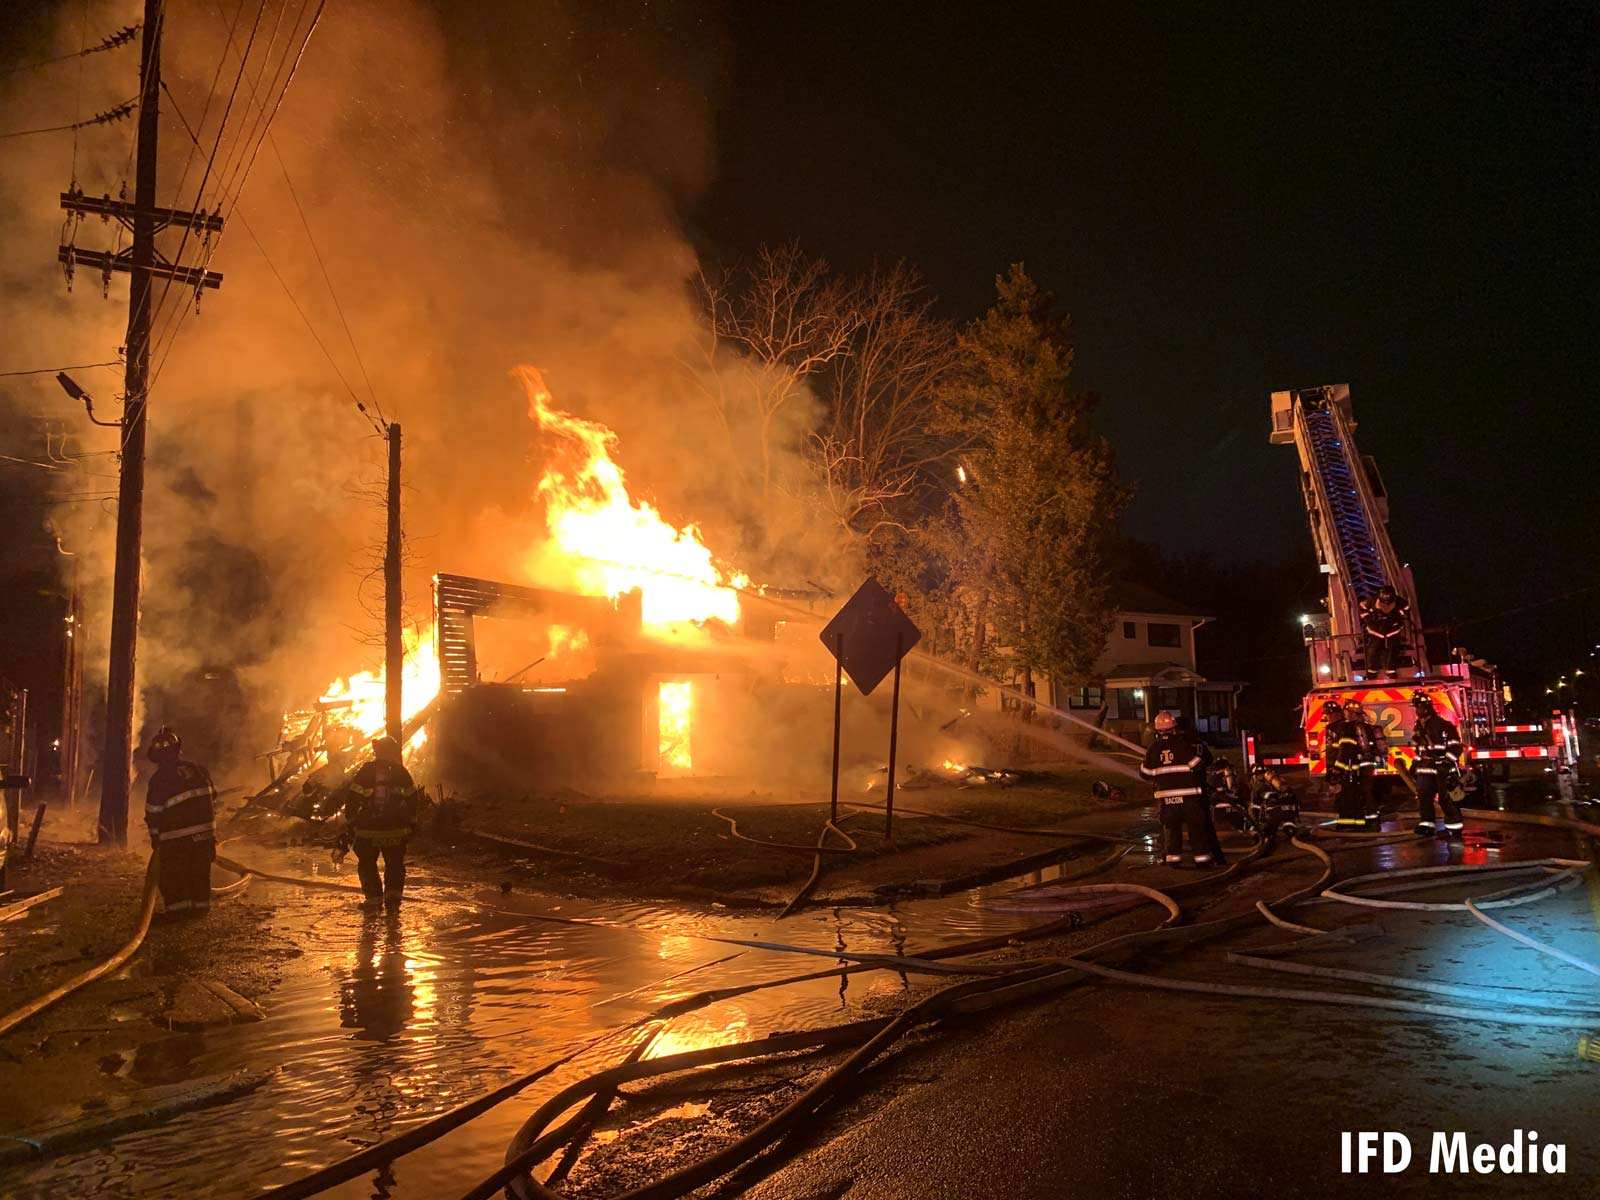 Indianapolis fire apparatus and firefighters battle a large fire